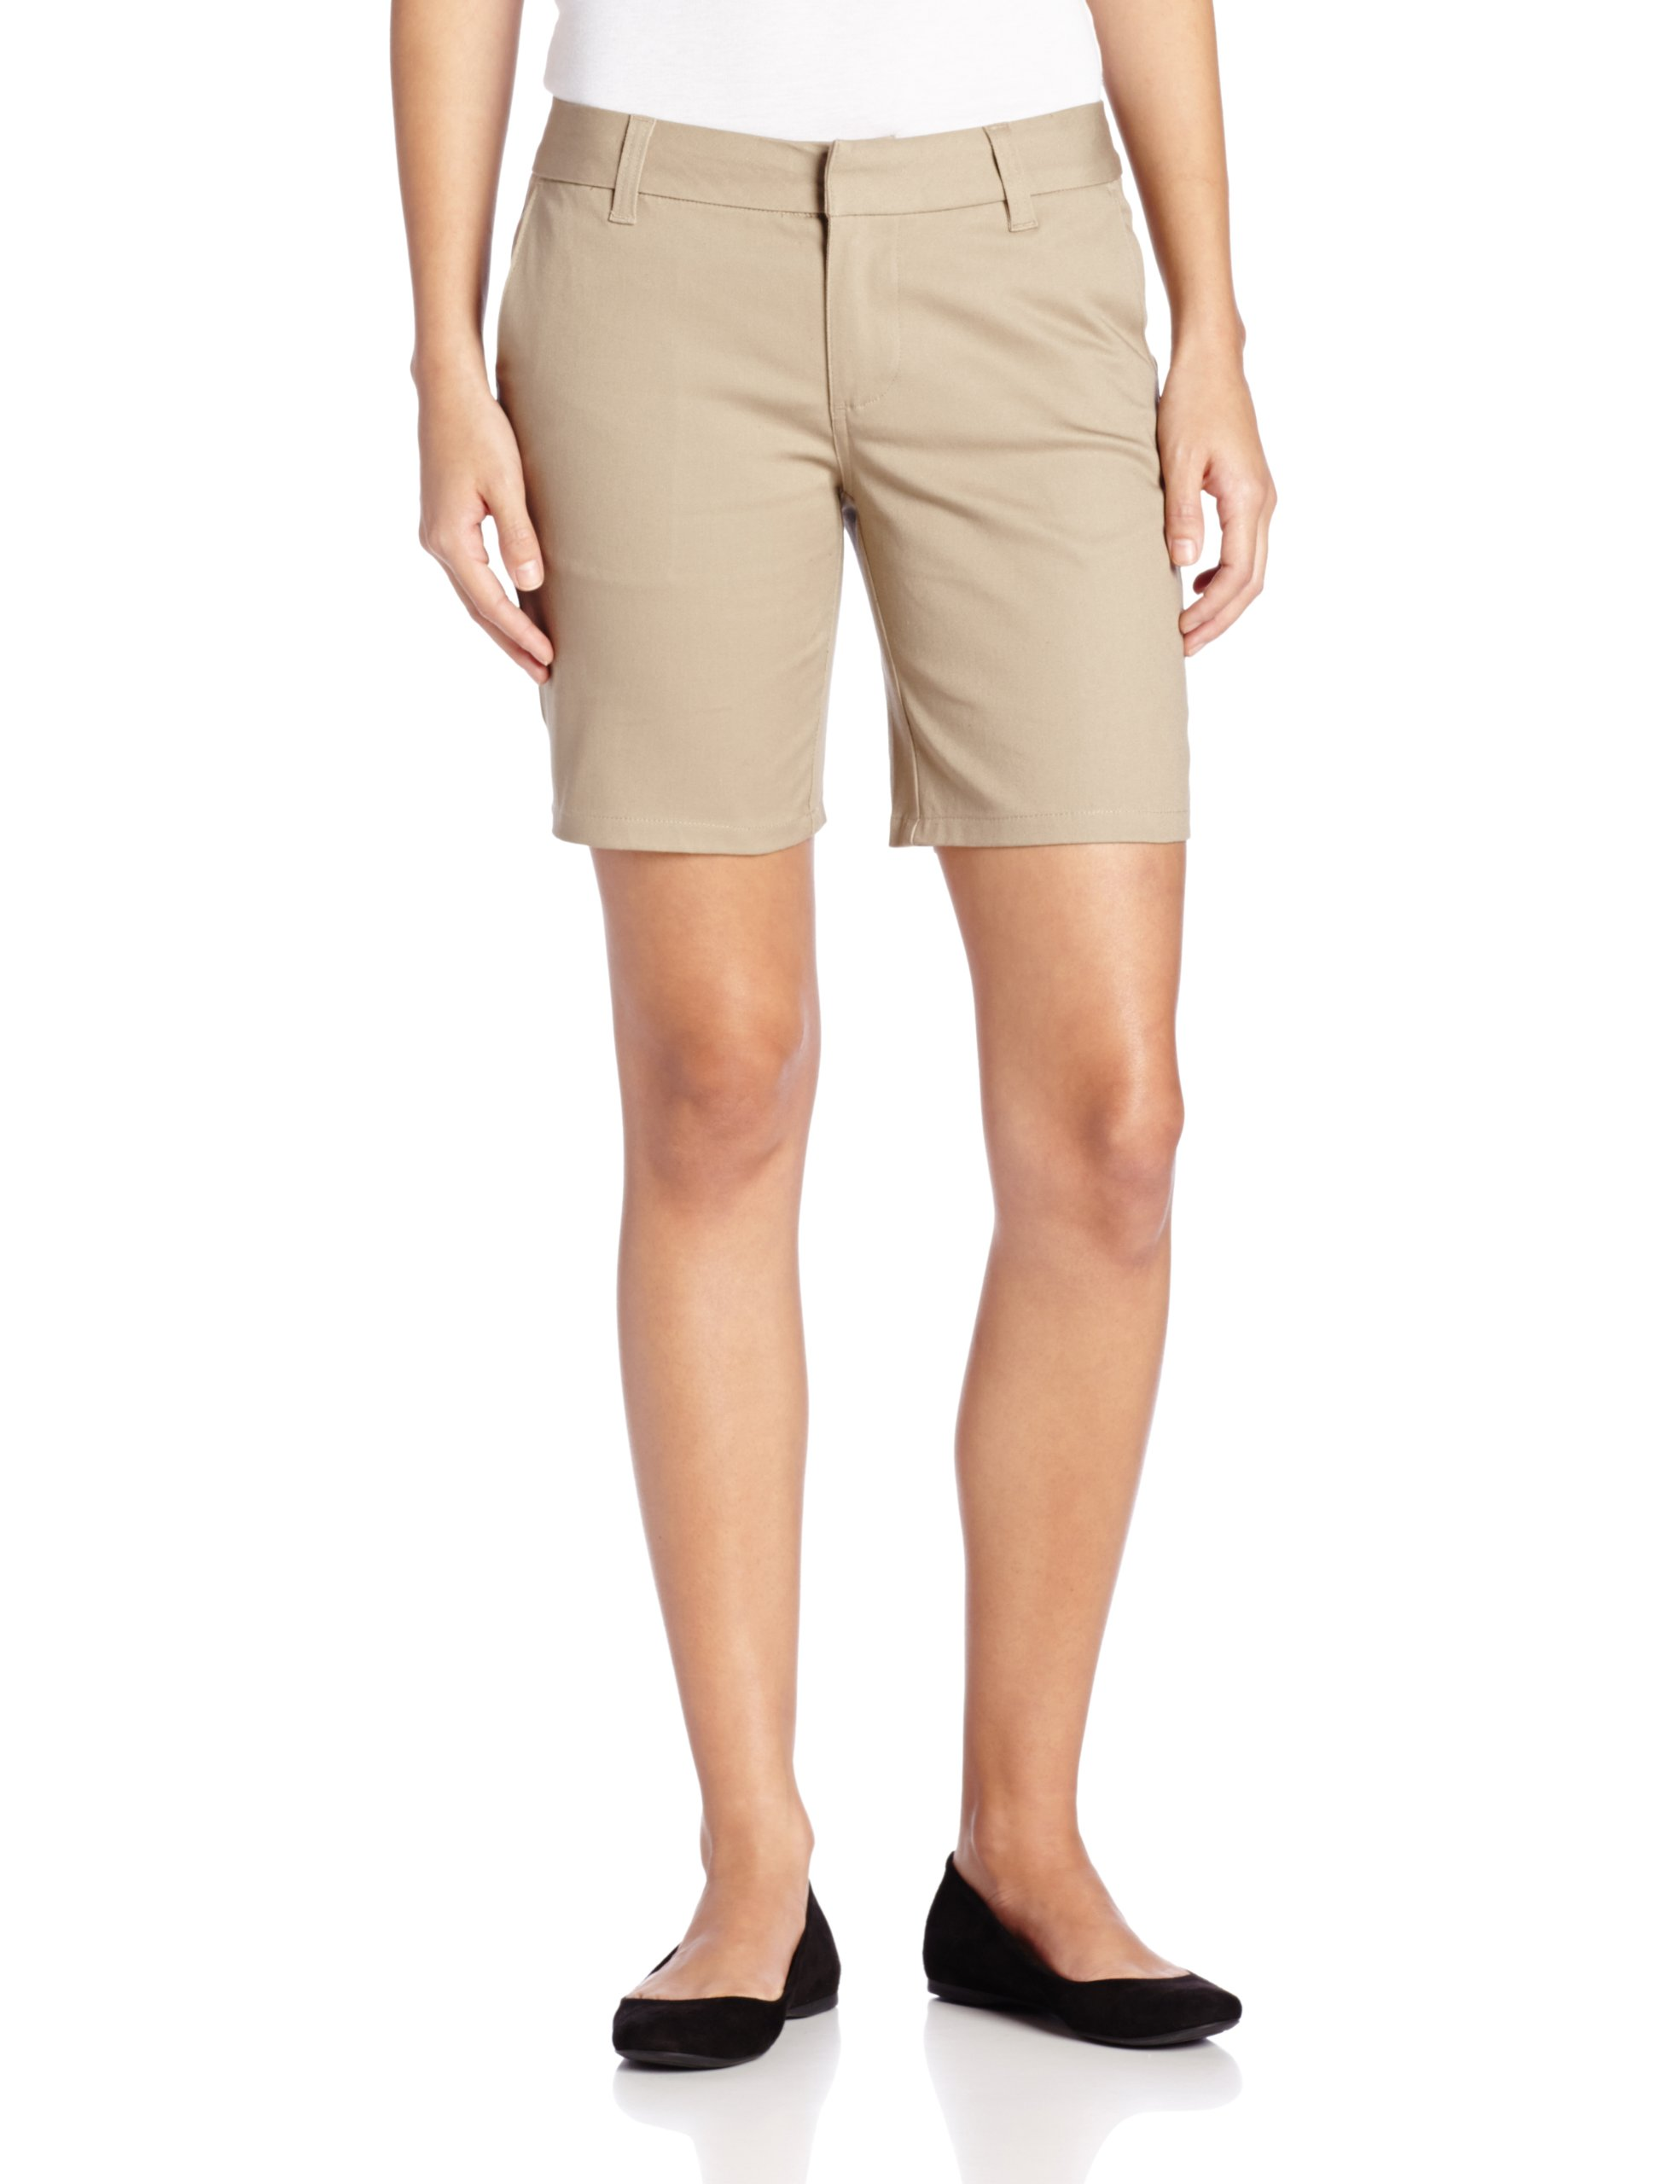 Lee Uniforms Juniors 8 Inch Classic Short, Khaki, 1 by LEE